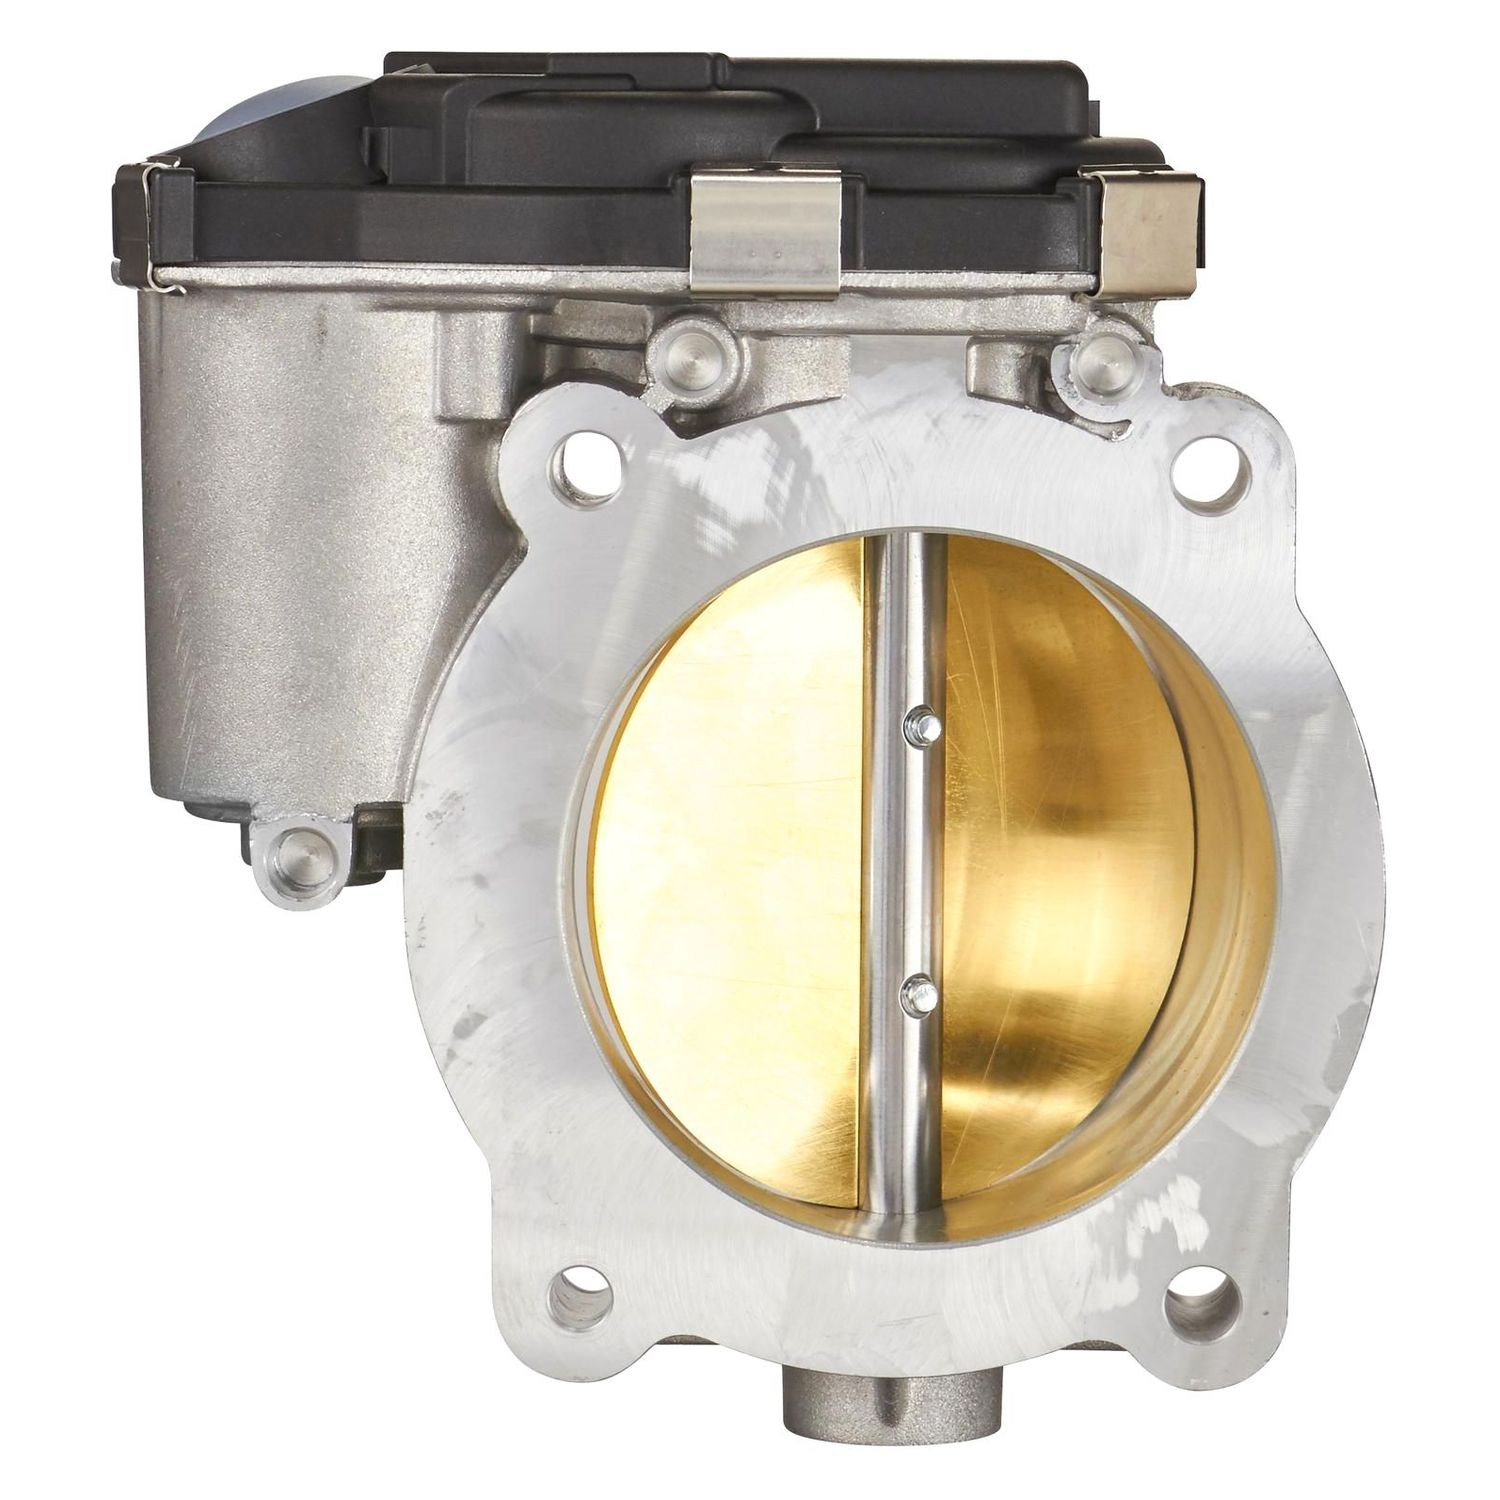 Spectra Premium TB1302 Fuel Injection Throttle Body Assembly